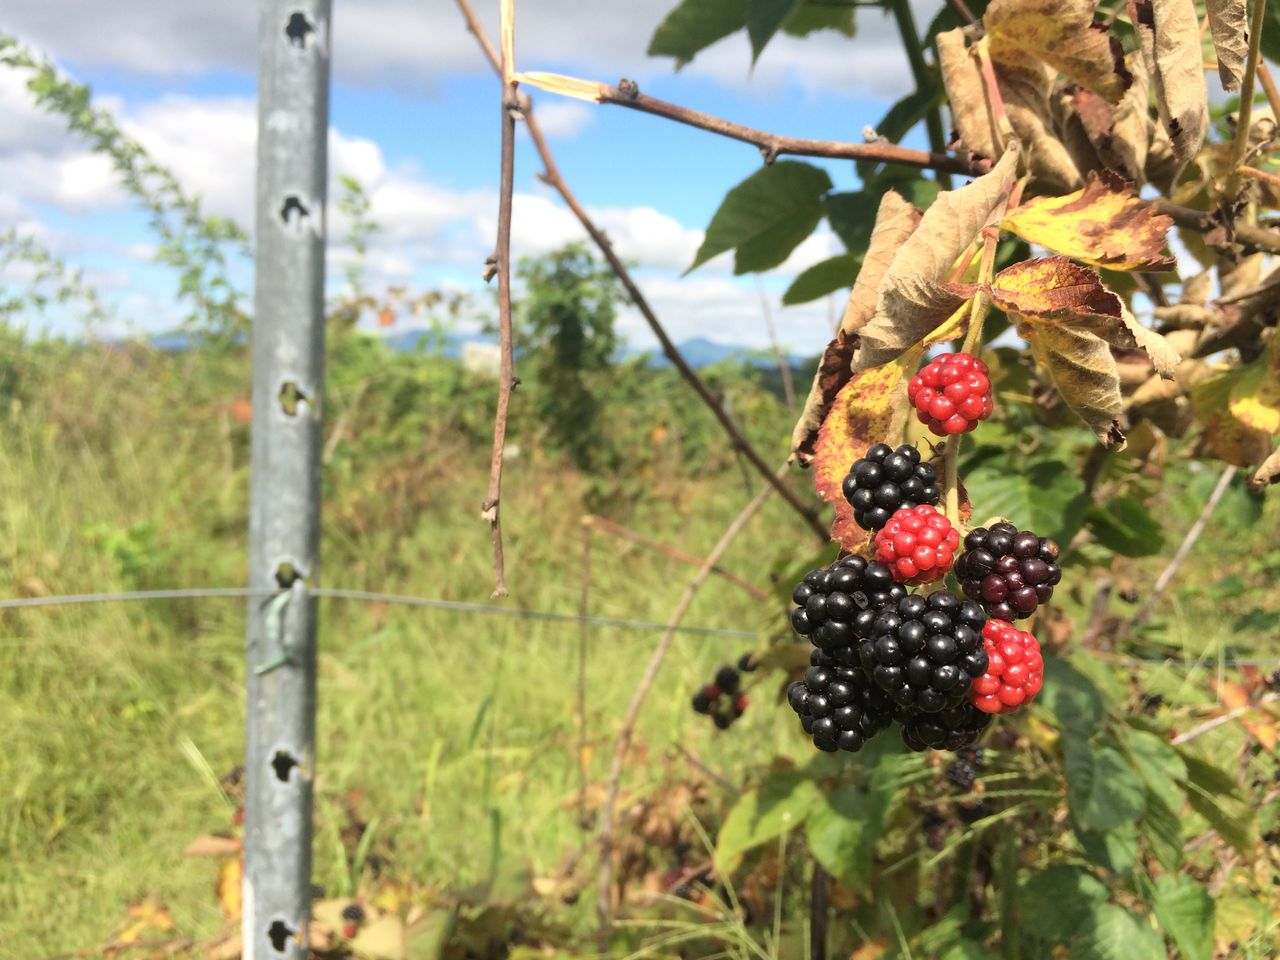 Close-up of blackberries hanging on plant